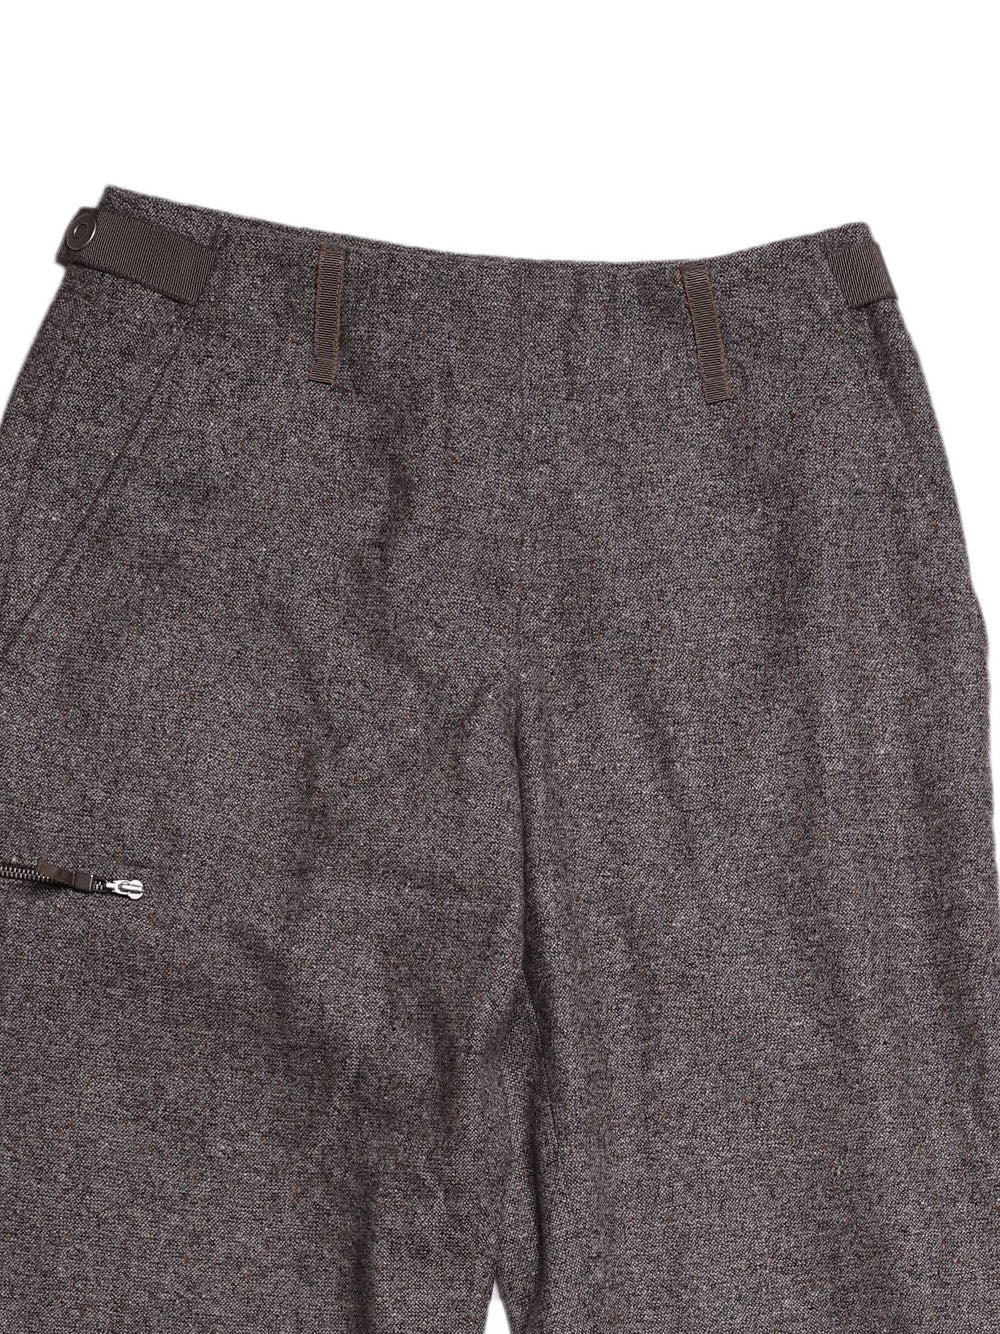 Detail photo of Preloved Gunex  Grey Woman's trousers - size 6/XS